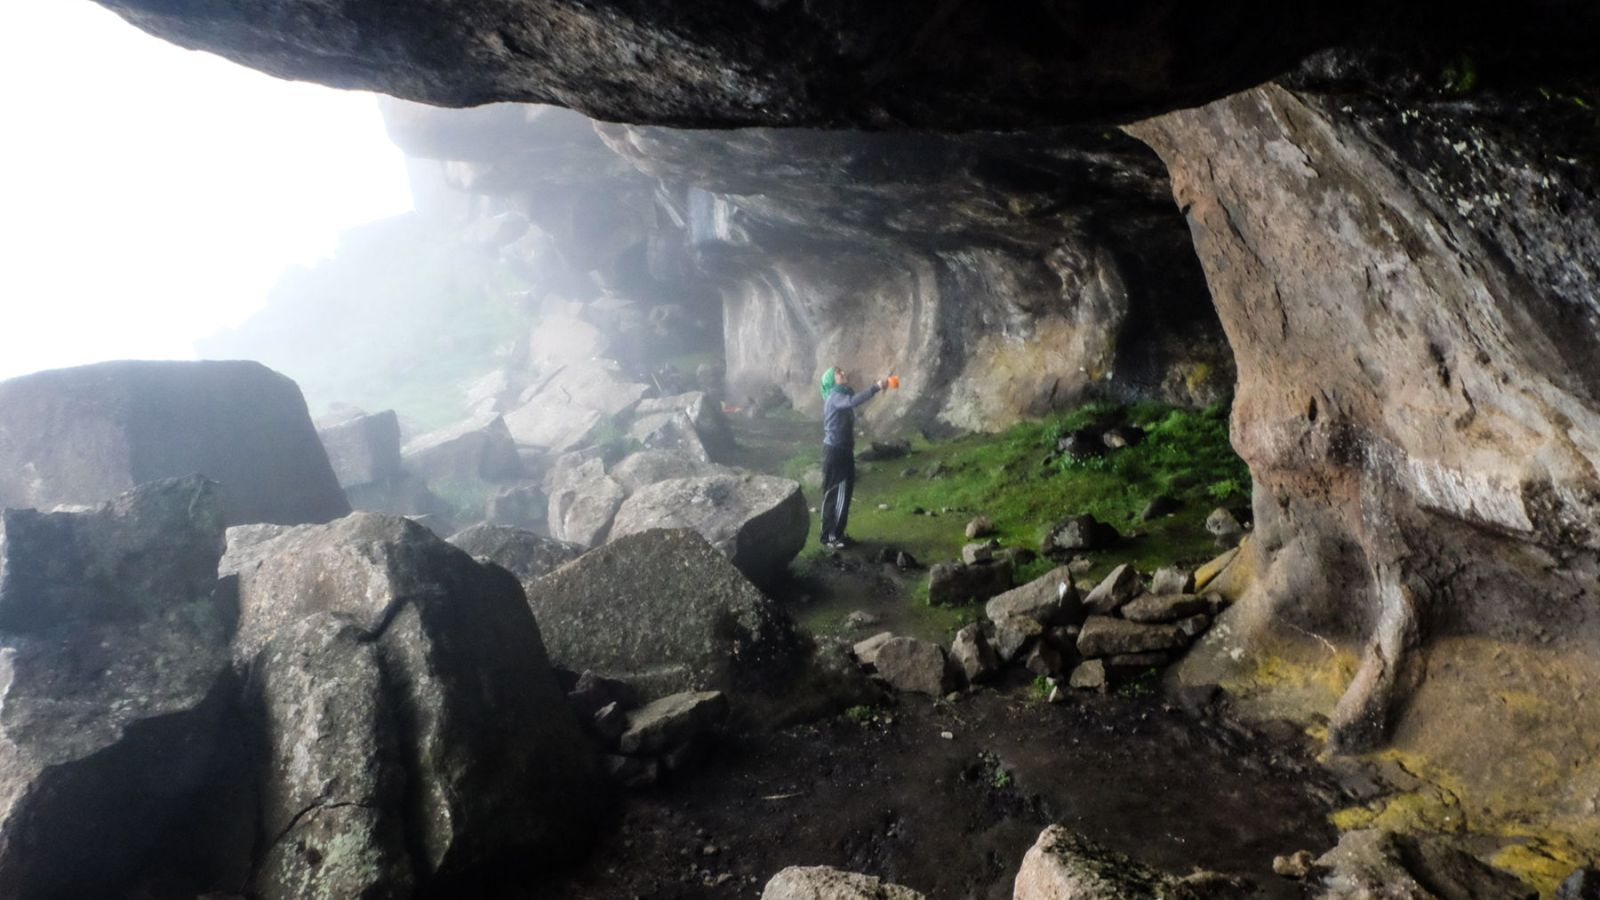 photo of a cave in the drakensberg mountains and a hiker collecting water